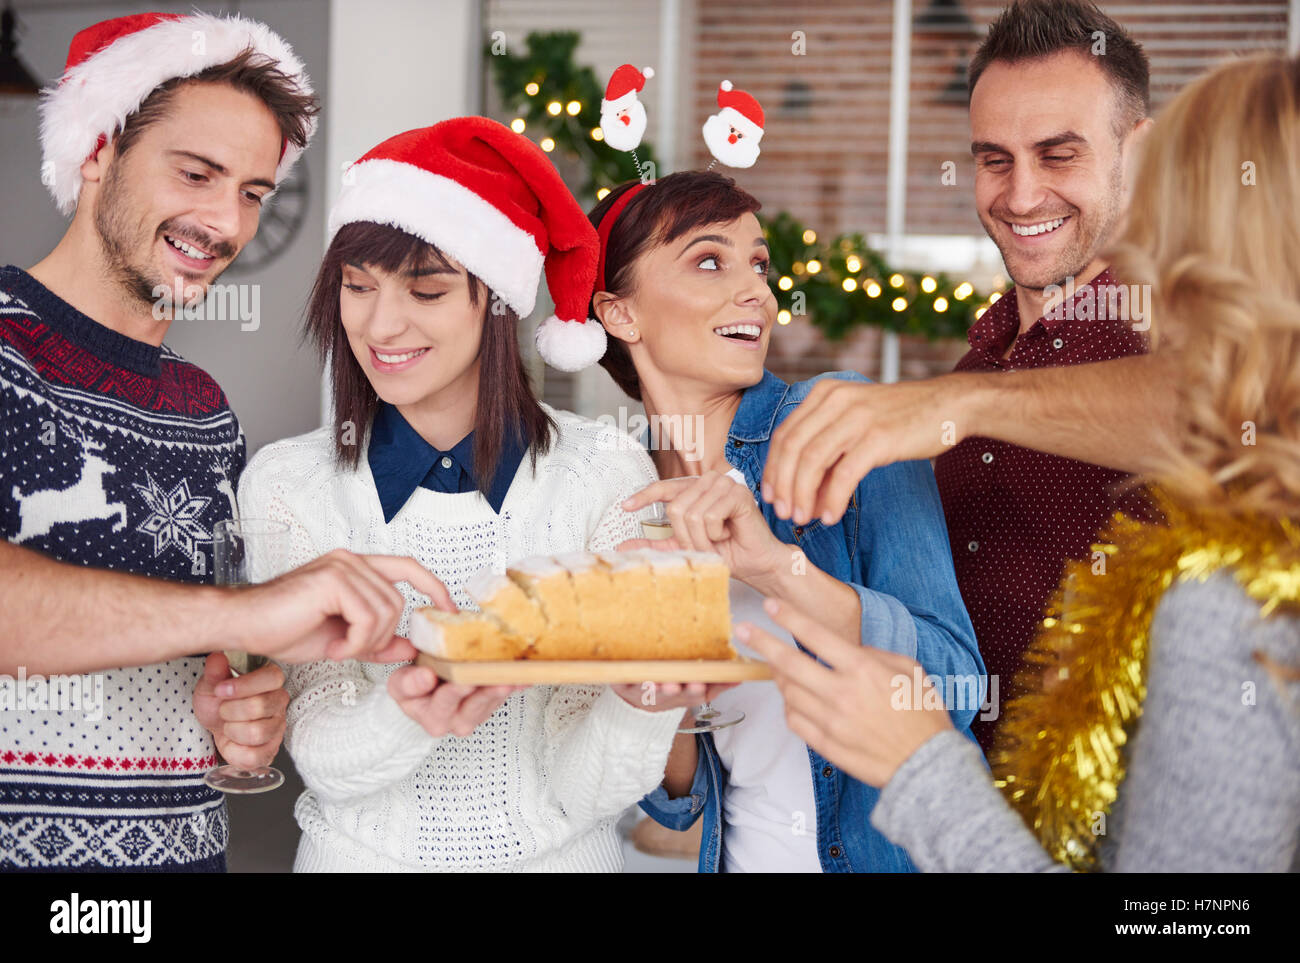 Take and try a piece of Christmas cake - Stock Image